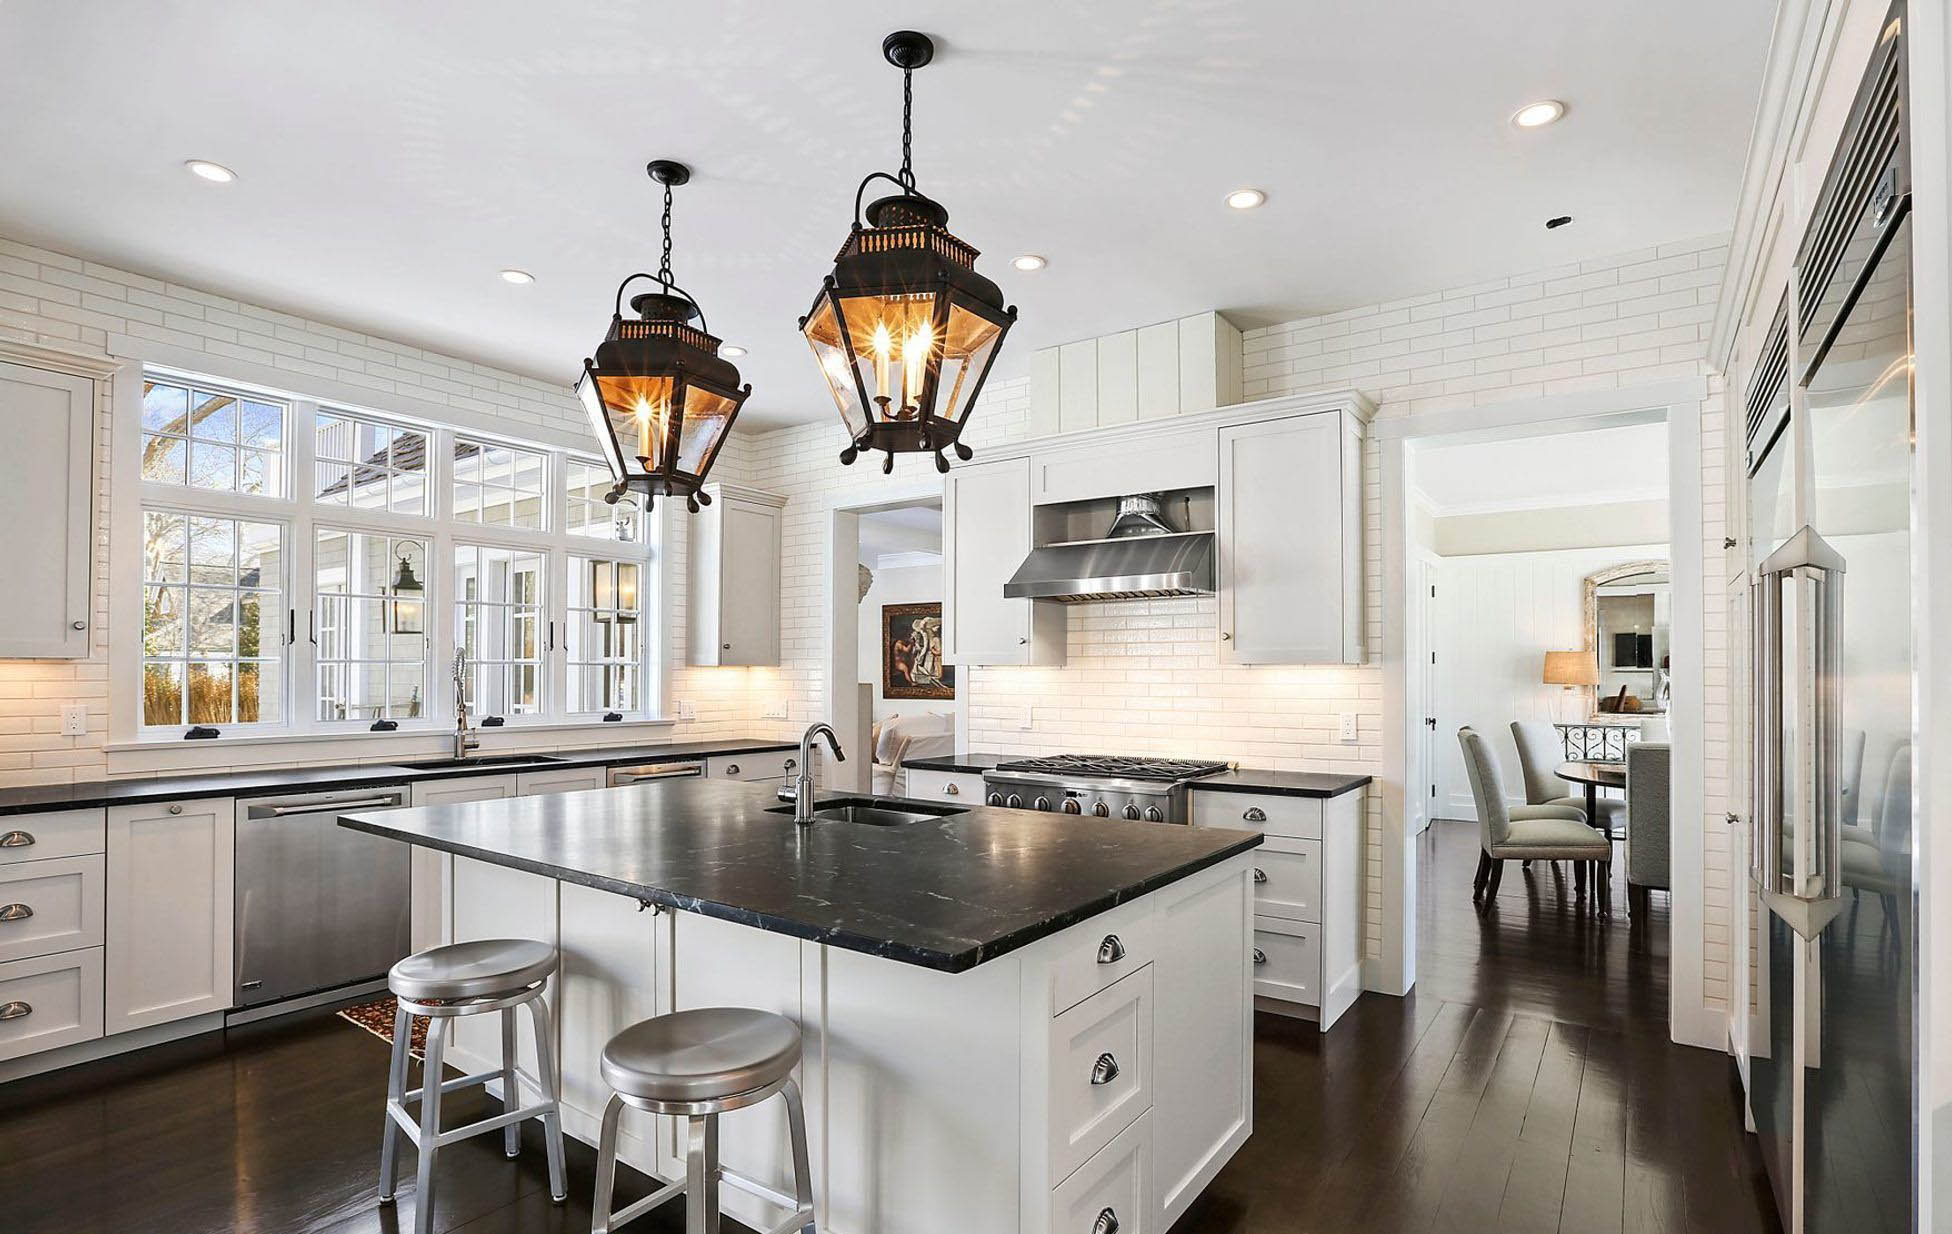 White kitchen cabinets with black granite. Dark brown hardwood floors. Stainless steel appliances. White subway tile backsplash. Quartz vs granite.